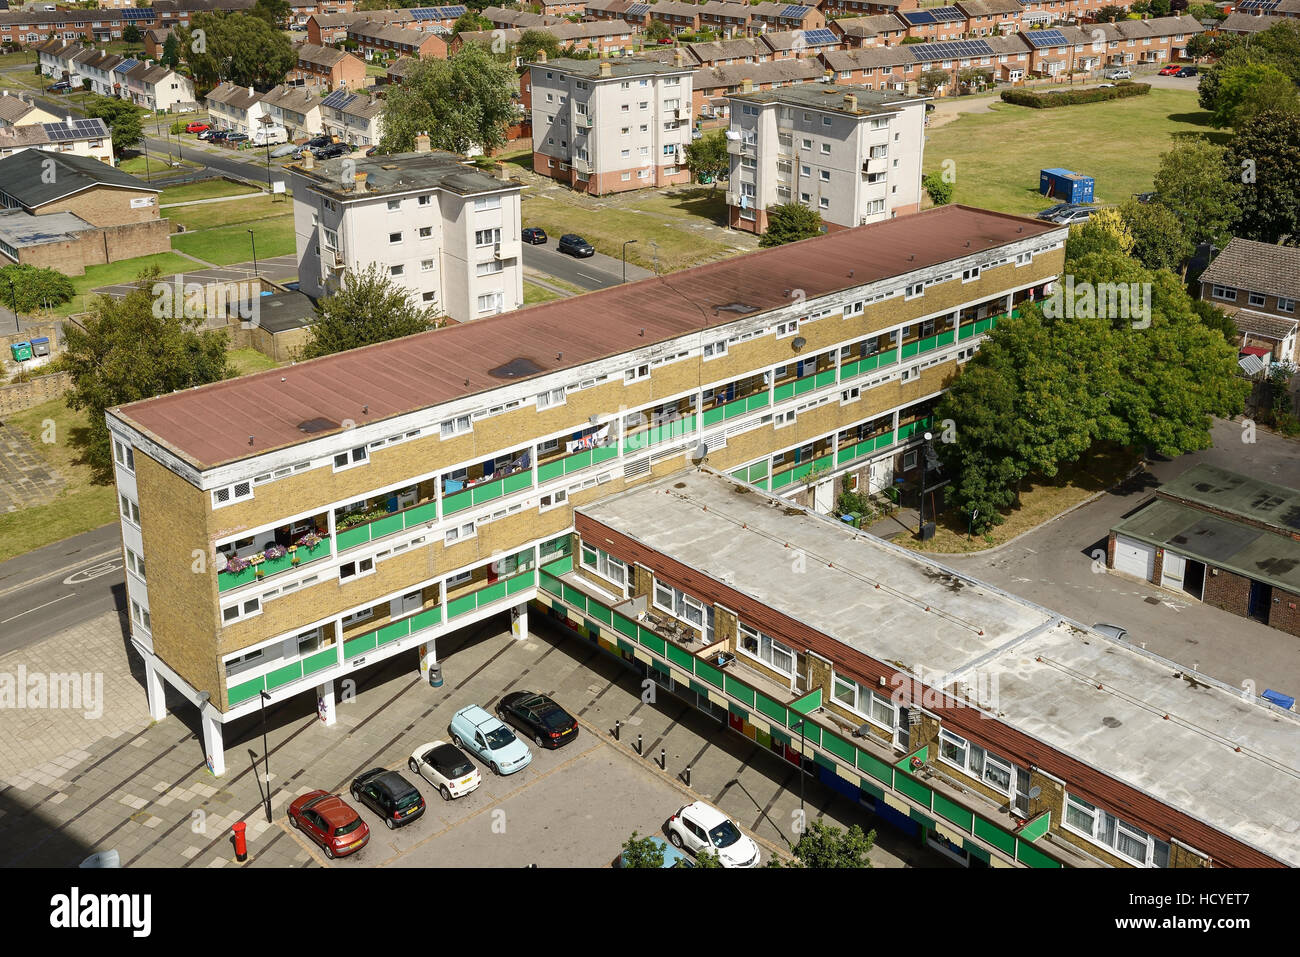 Social housing flats on the outskirts of Southampton UK - Stock Image